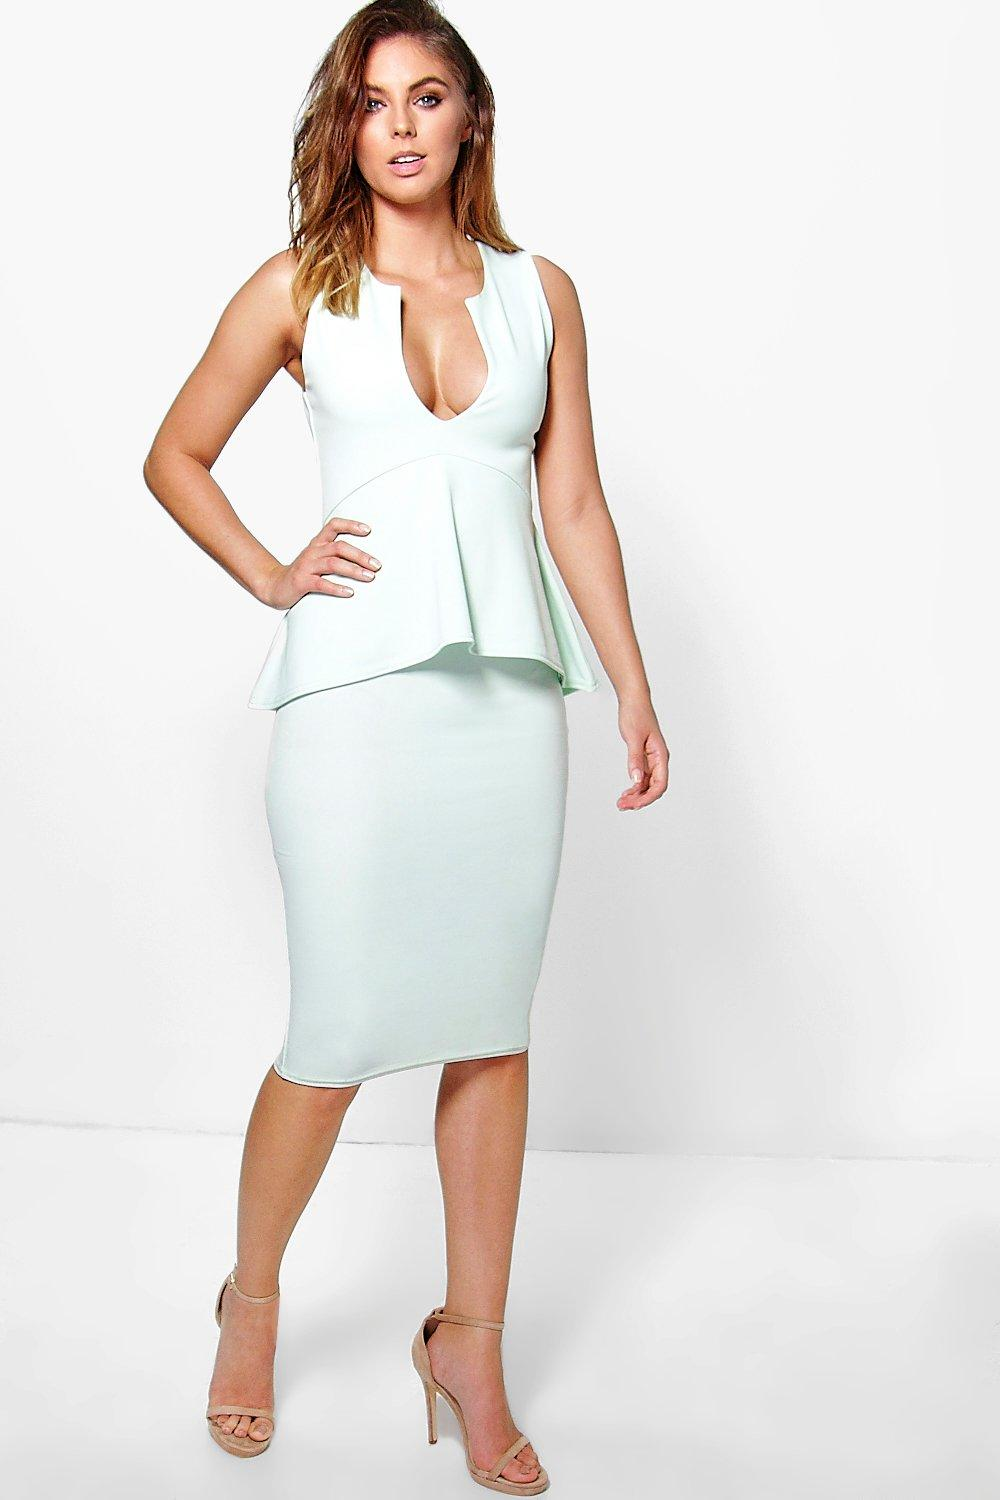 Harlie V Neck Peplum Midi Dress